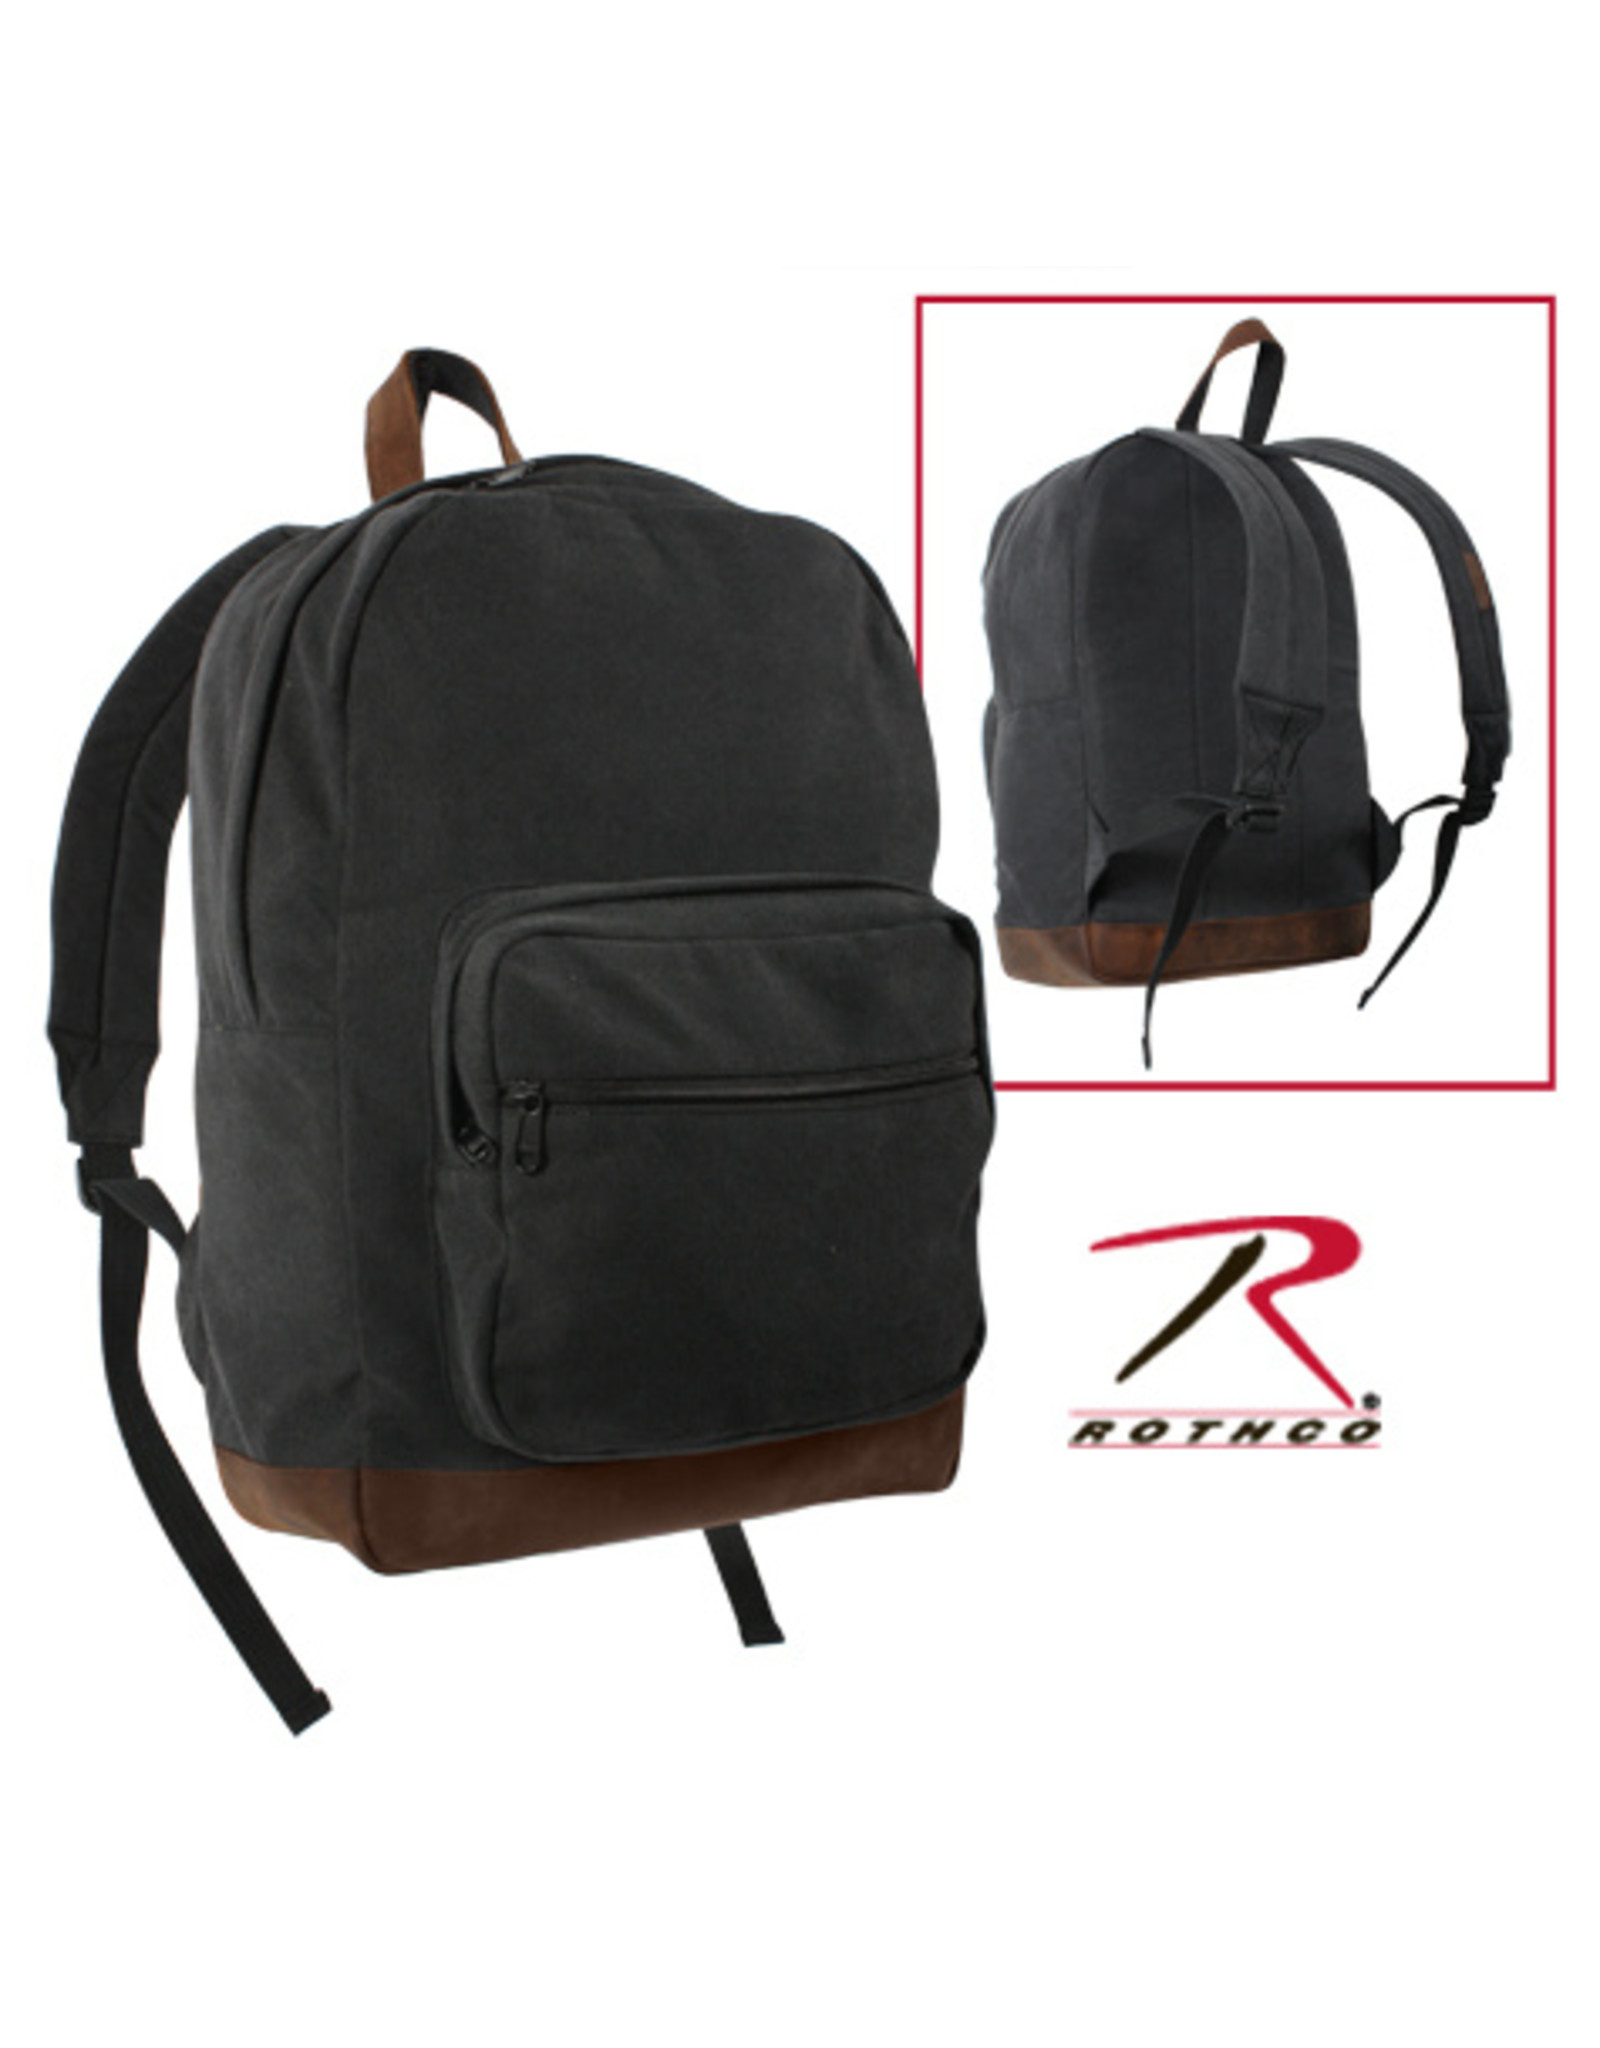 ROTHCO CANVAS TEARDROP PACK W/ LEATHER ACCENT